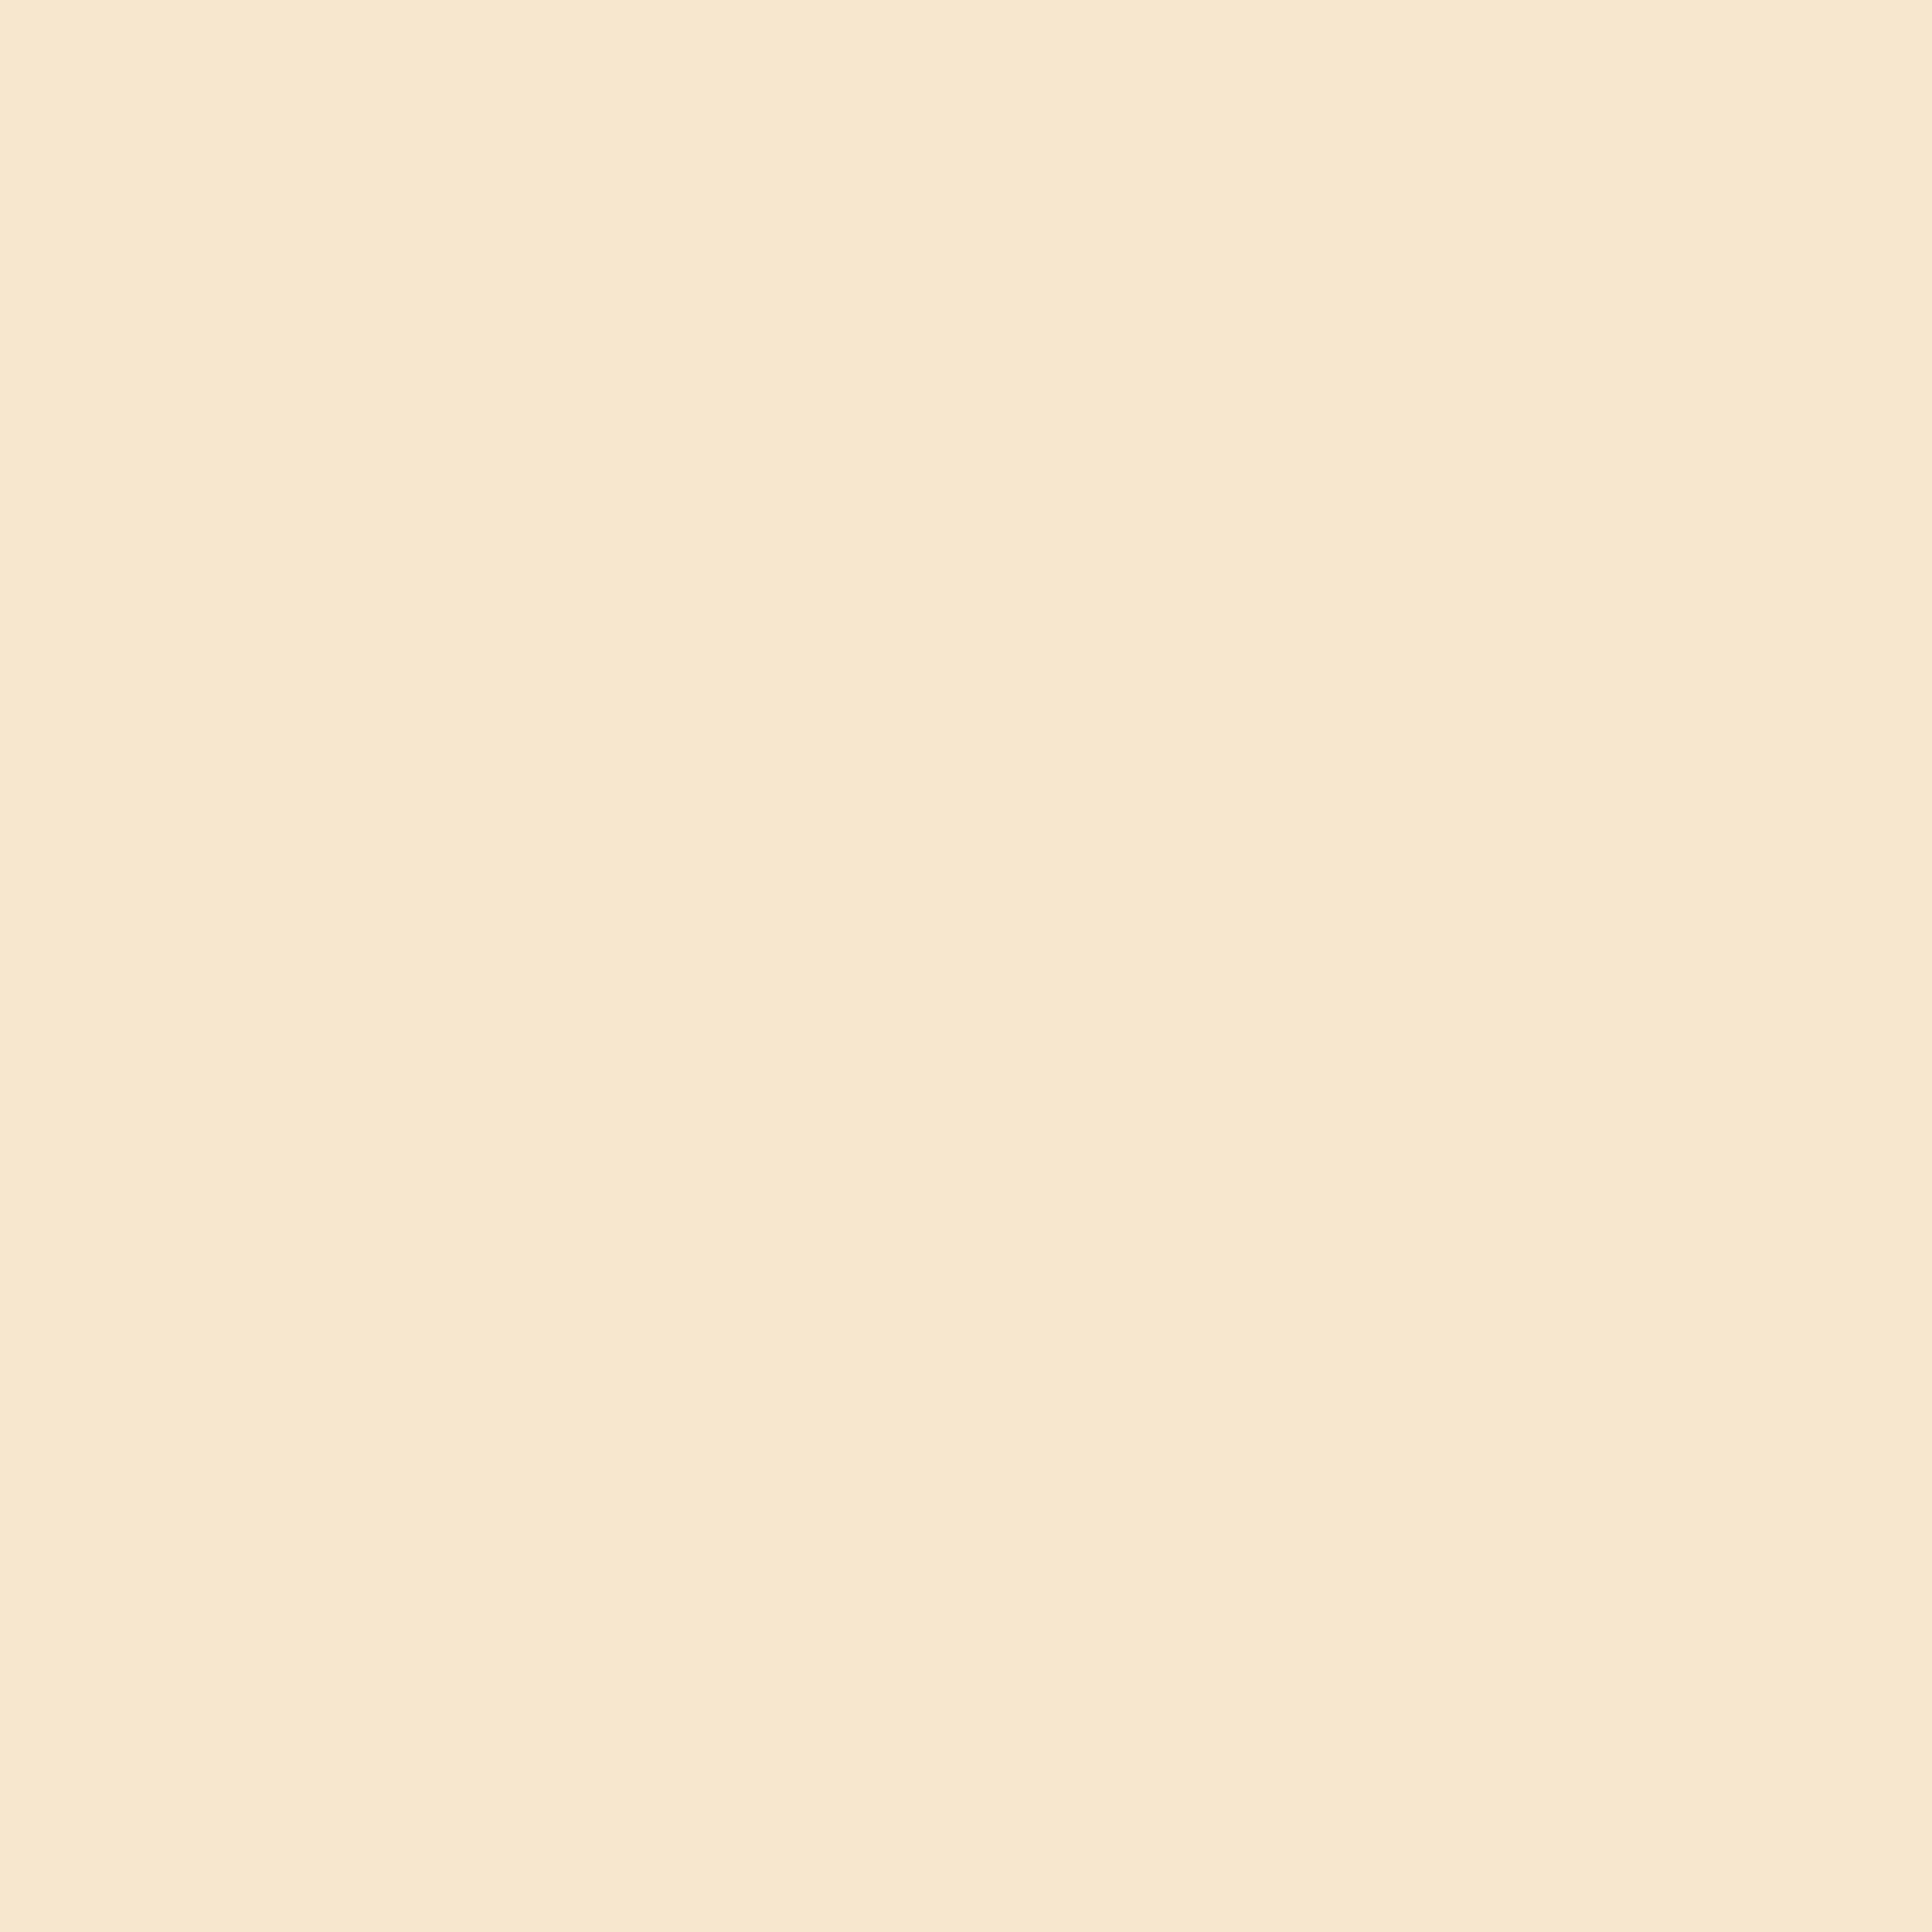 2732x2732 Champagne Solid Color Background